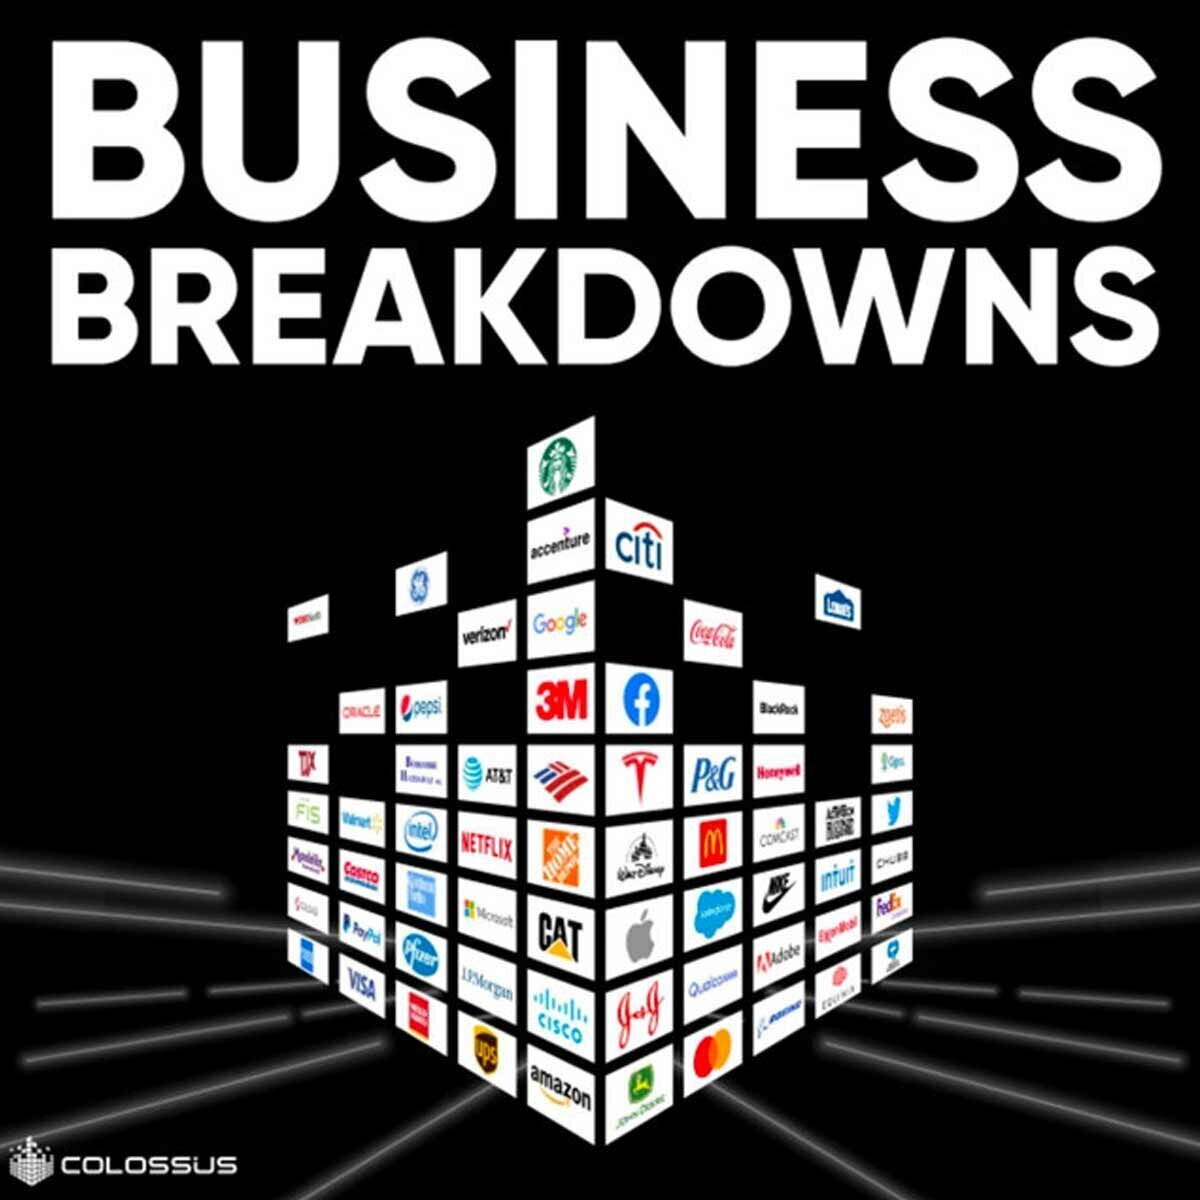 Business Breakdowns podcast cover image